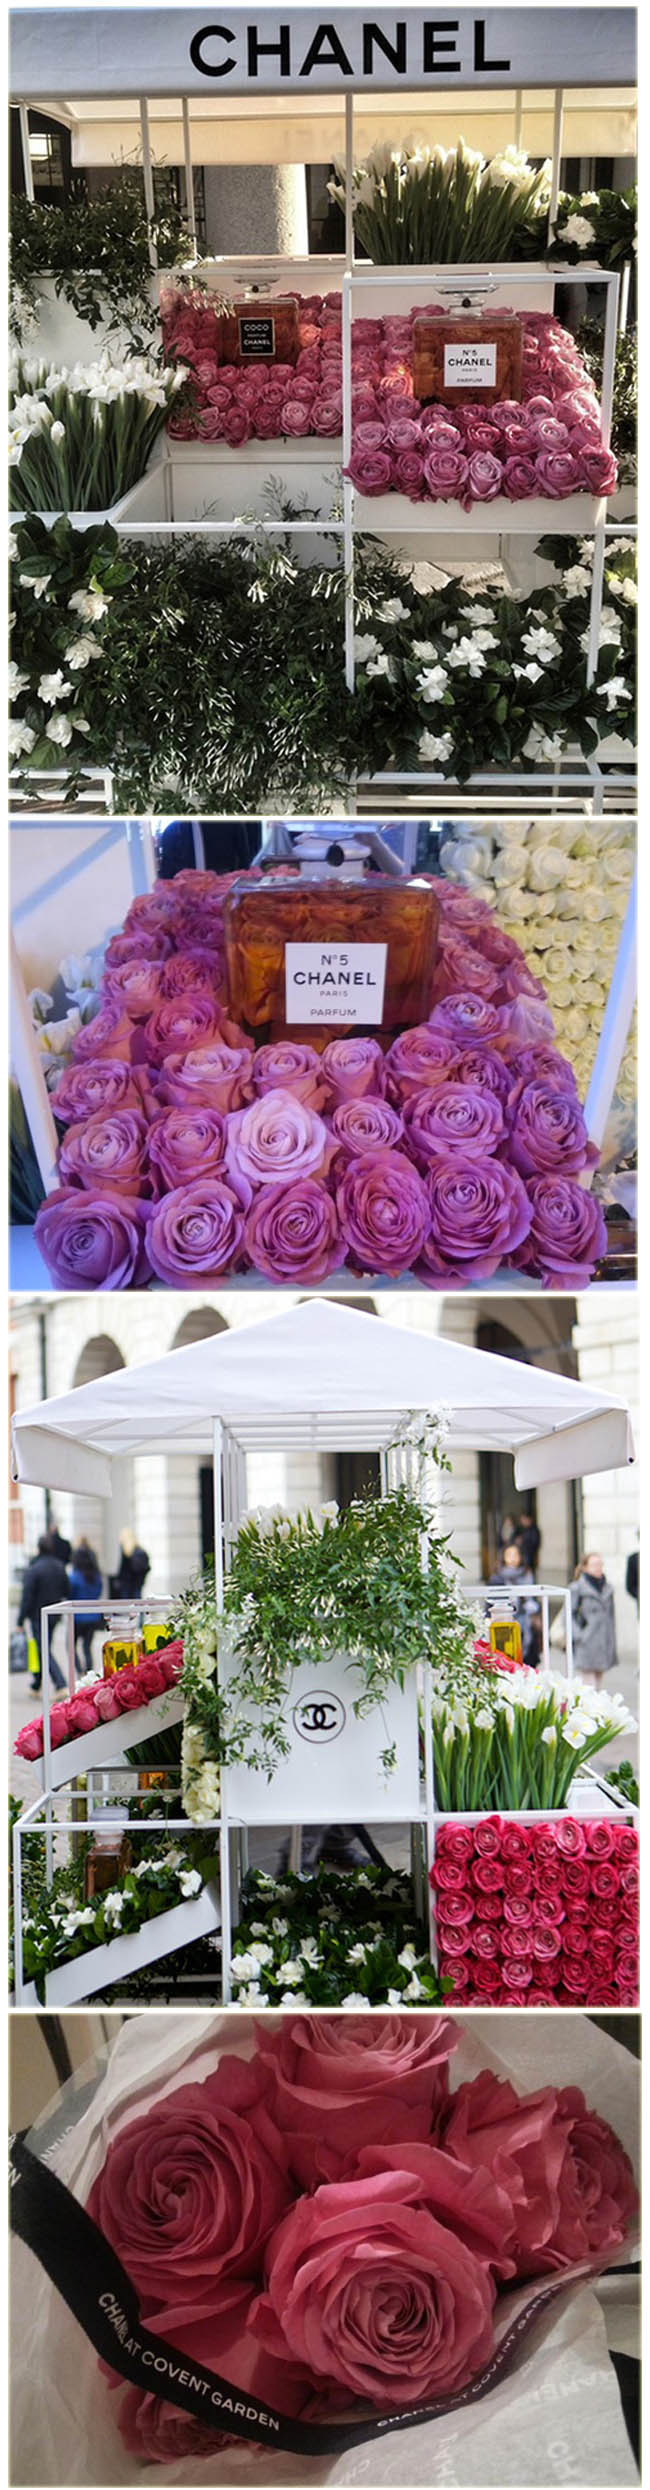 chanel, chanel dia das maes, pop up store chanel flowers, chanel perfumes, londres, dicas de londres